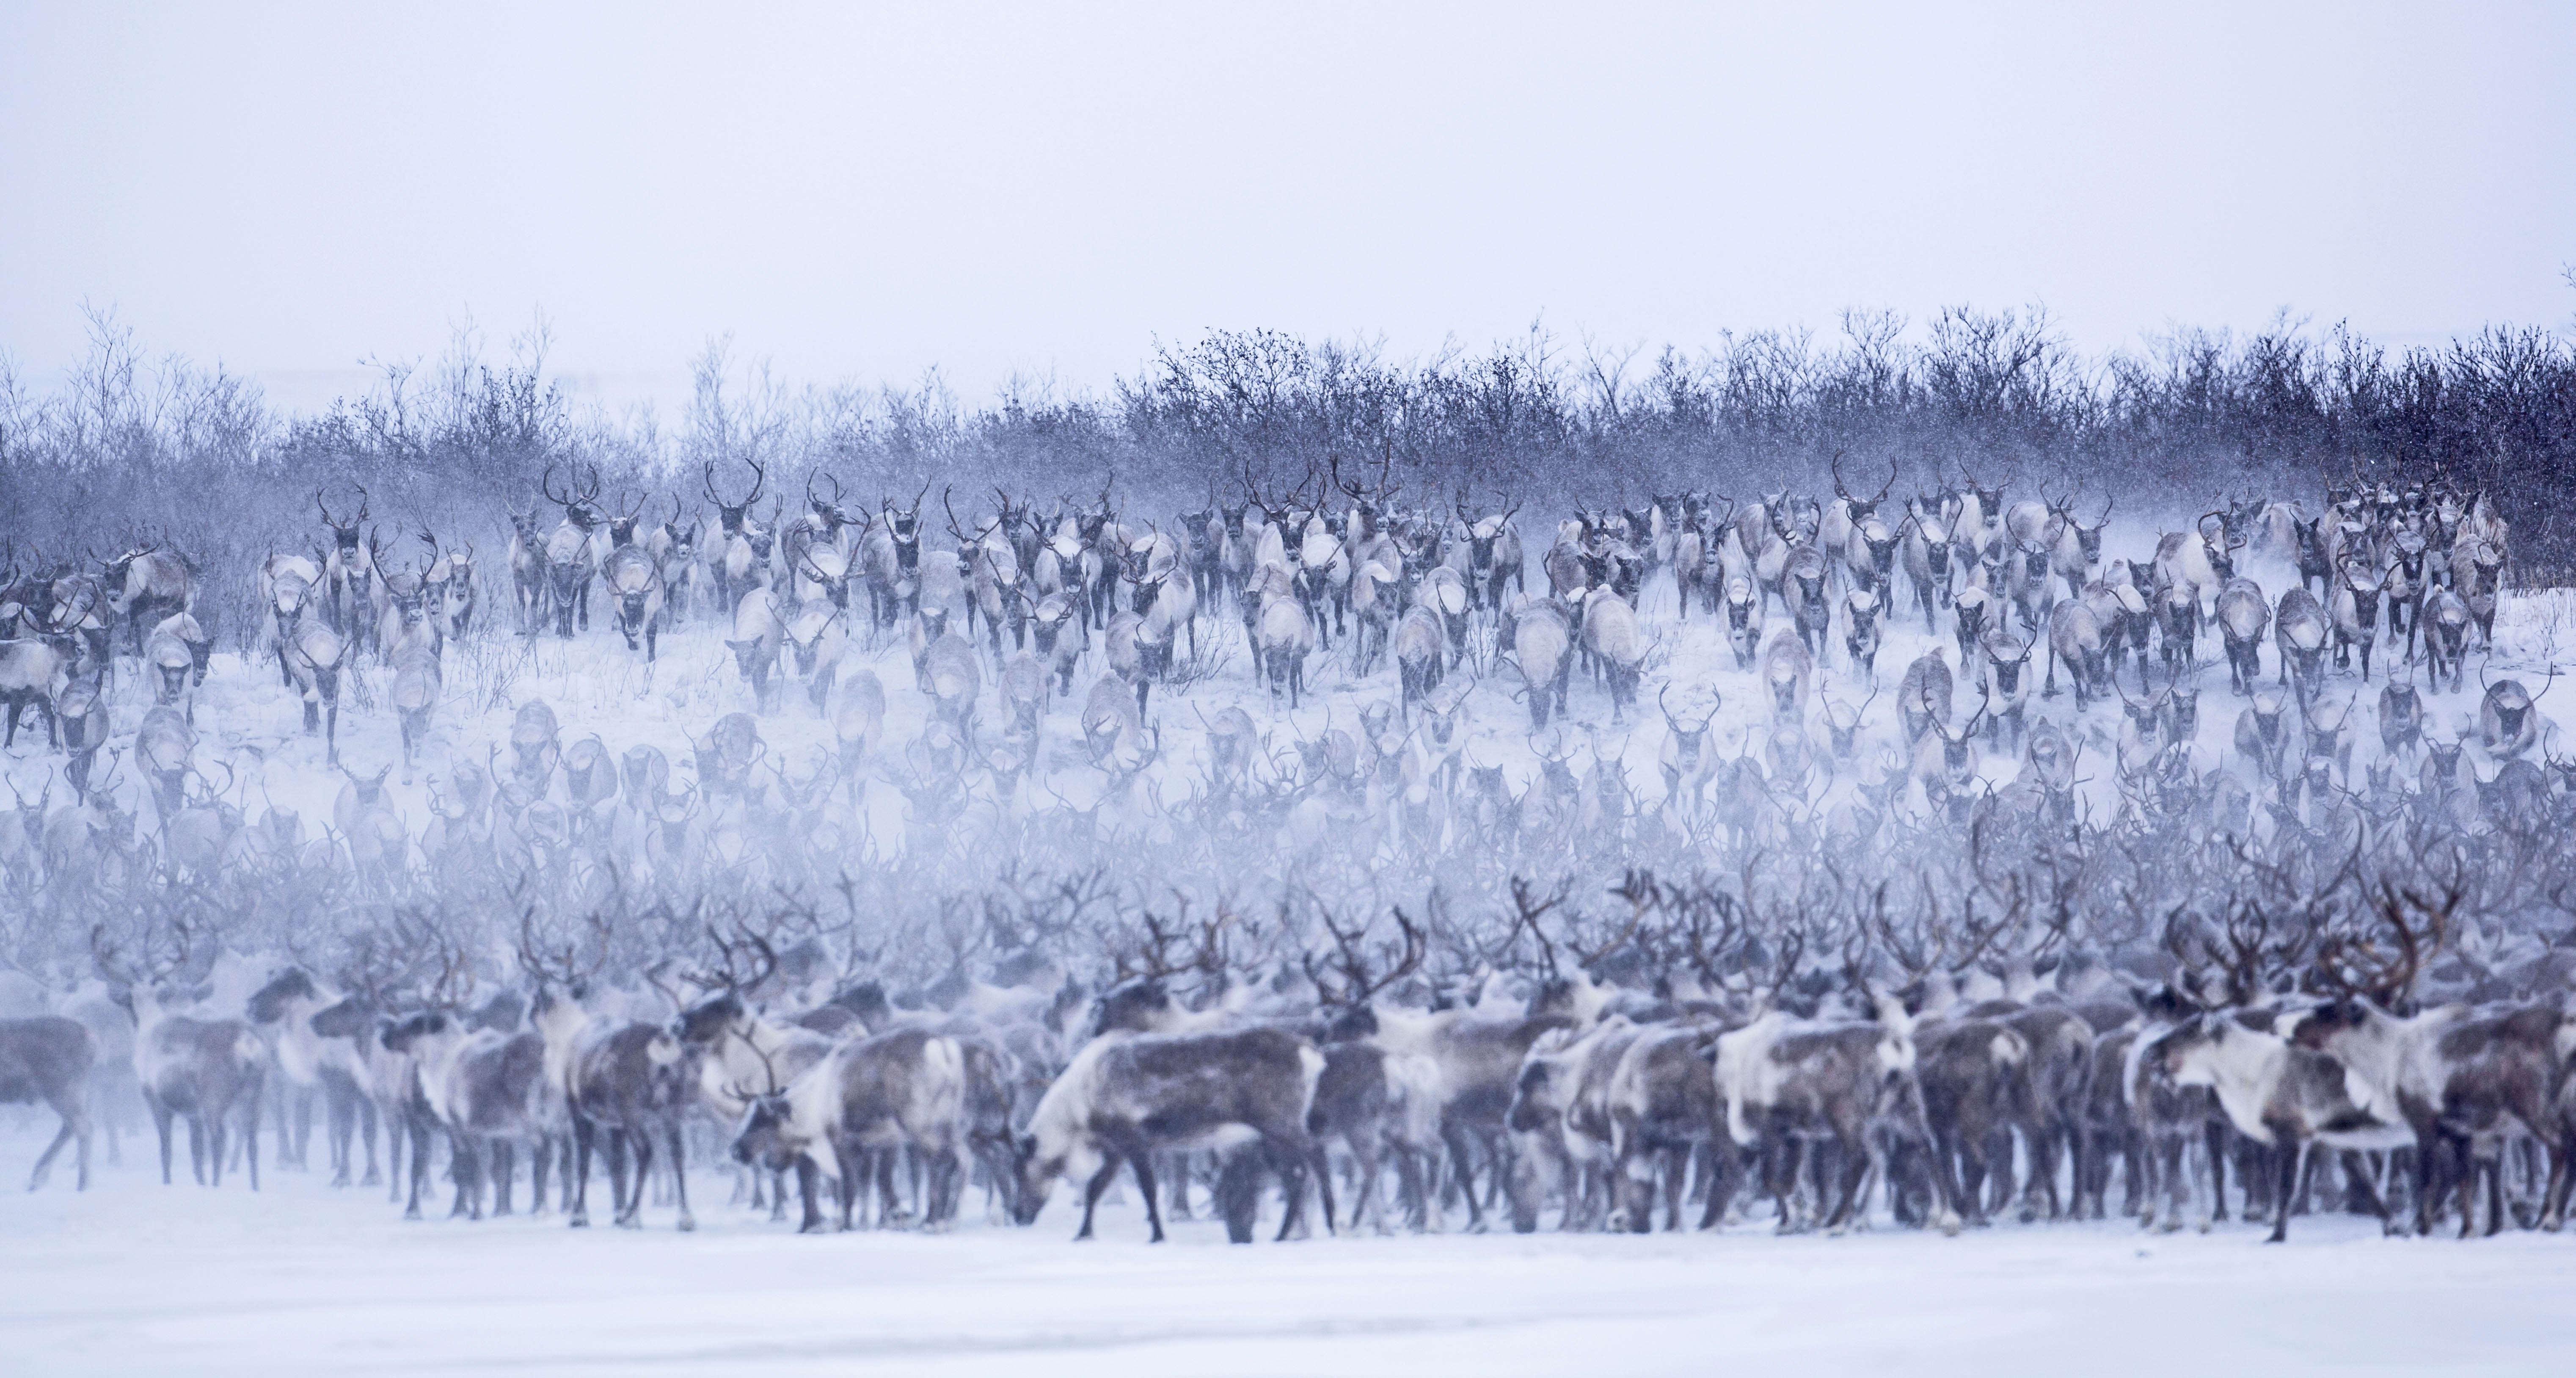 Reindeer are a species of deer located in the Arctic regions of the world The largest Reindeer can reach up to four feet high at the shoulder and weigh as much as 250 pounds